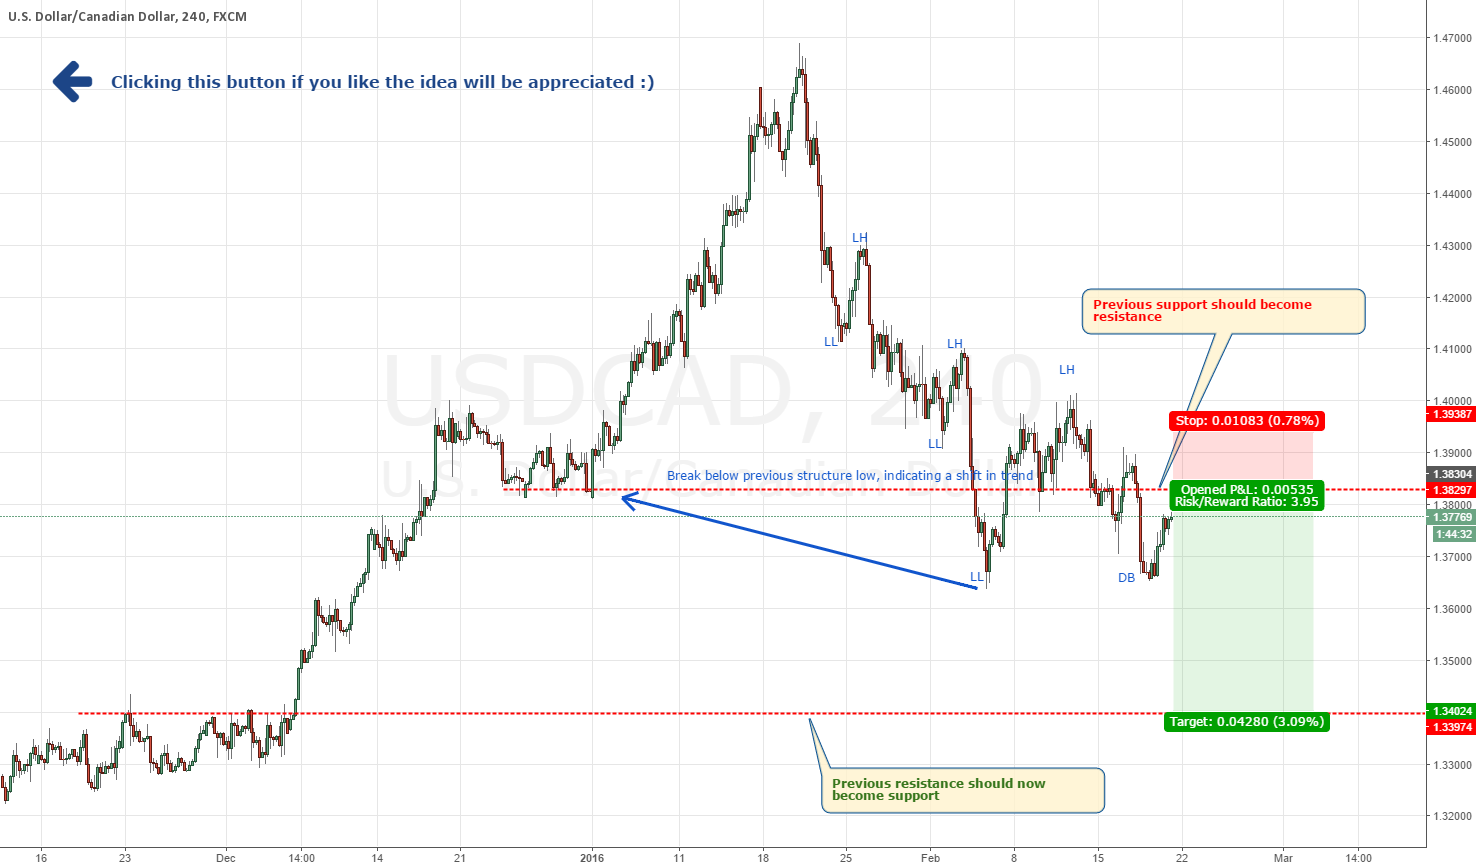 USDCAD - Get on board for this short (TCT)